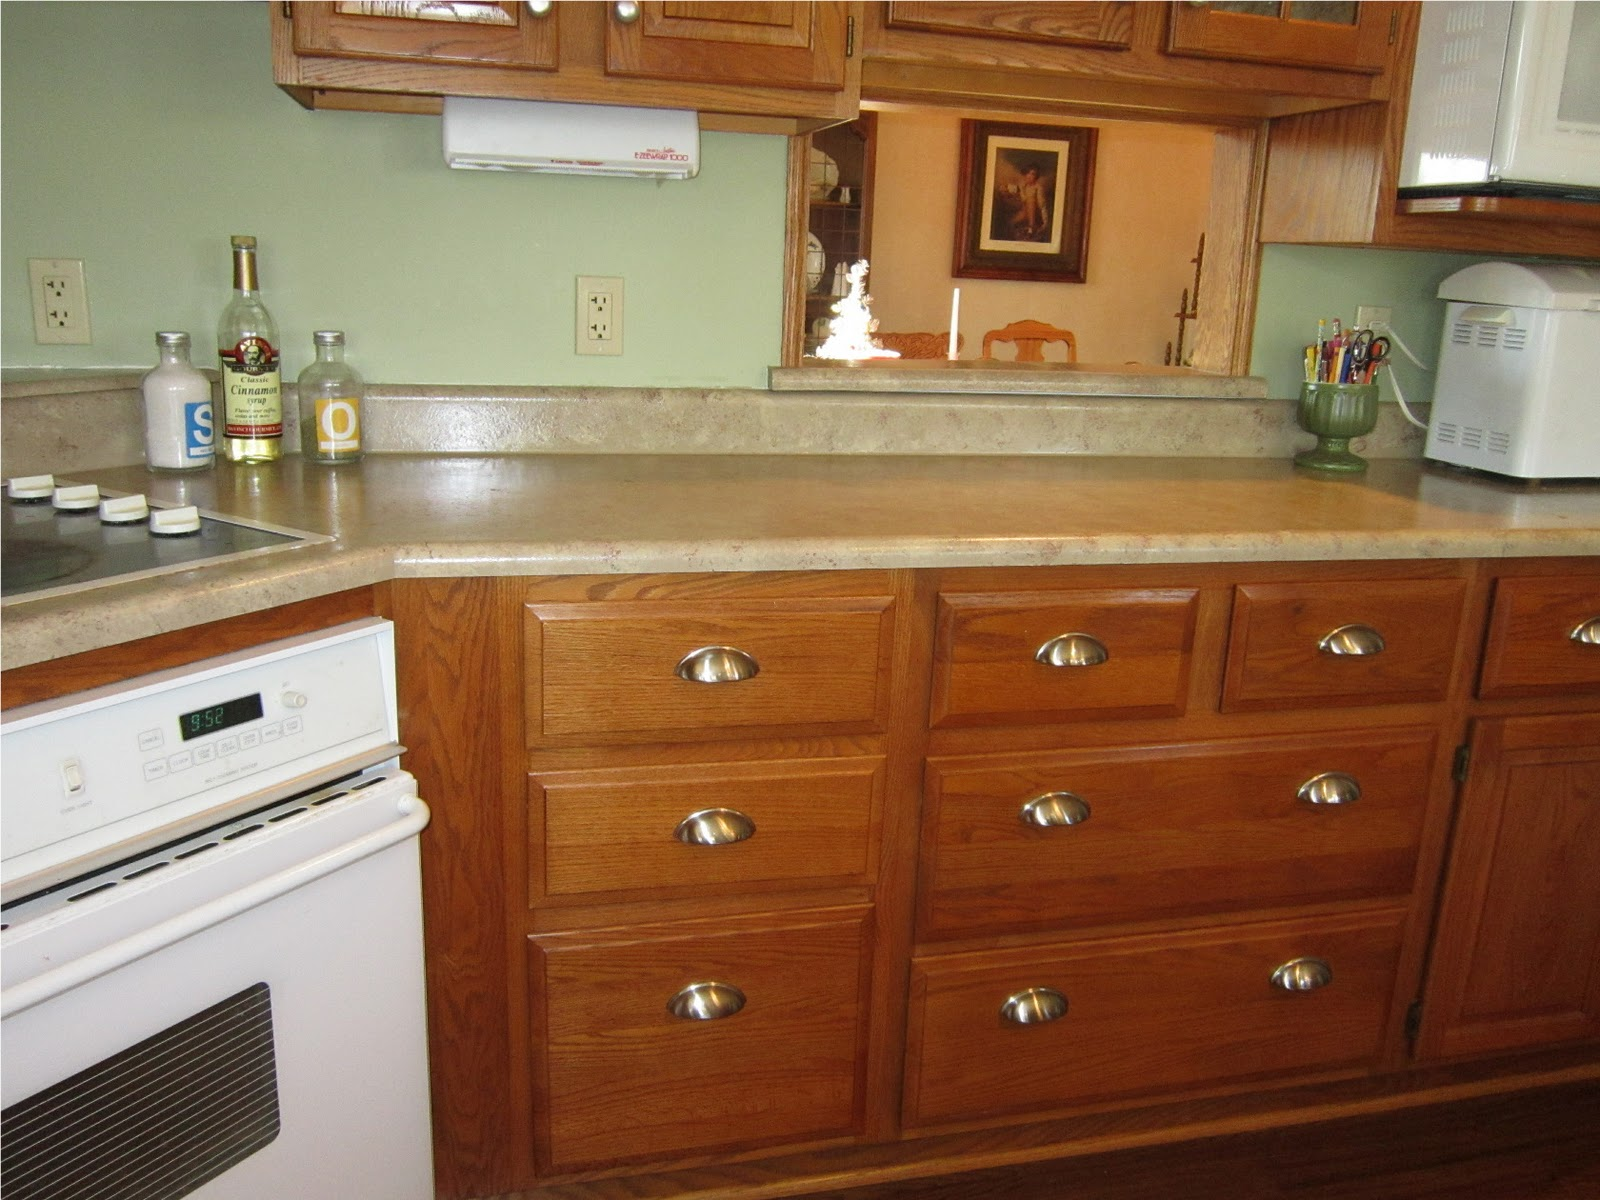 Kammy's Korner: Mom's Gorgeous Painted Countertops